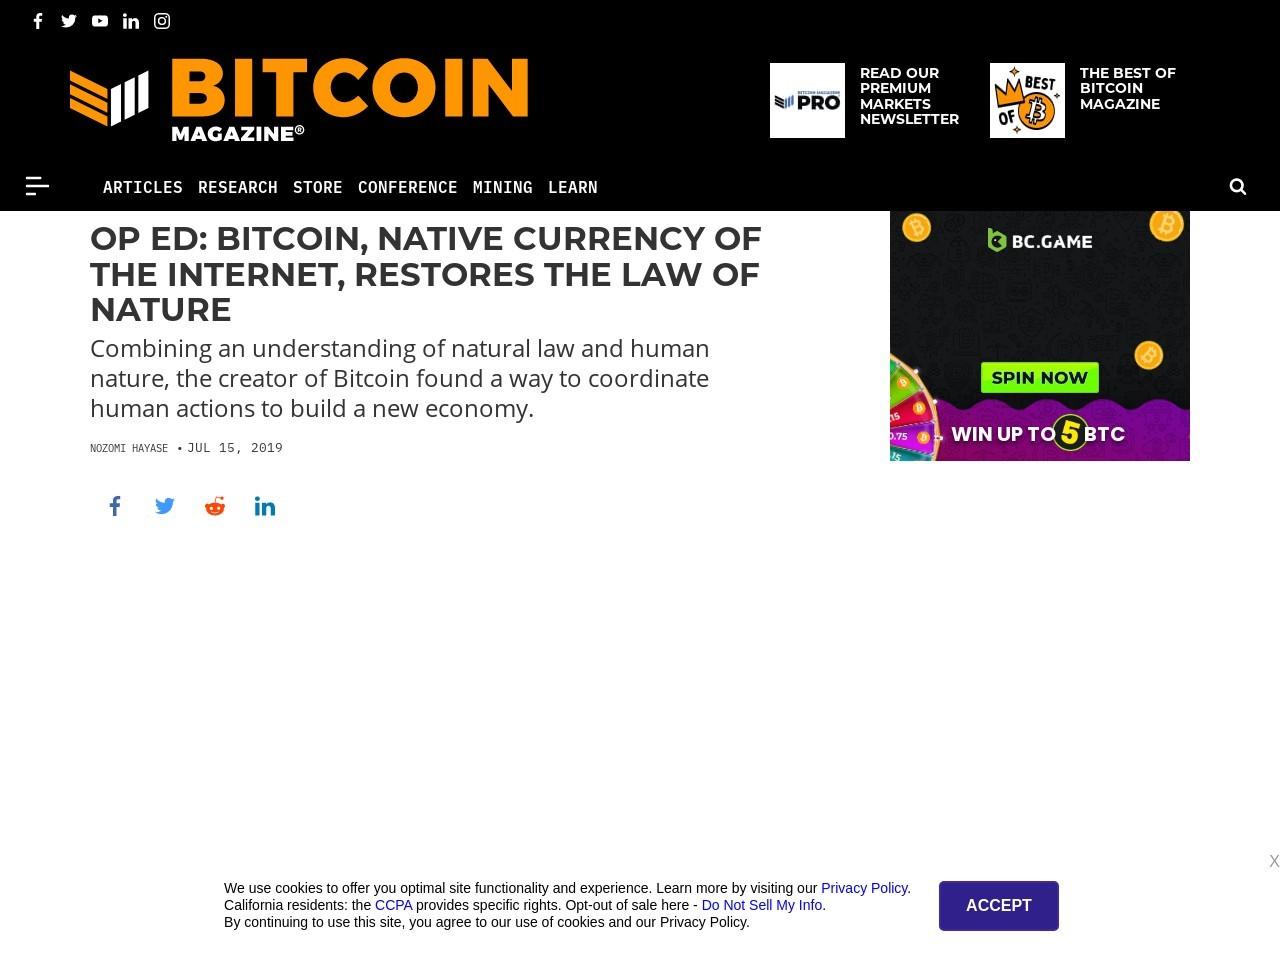 Op Ed: Bitcoin, Native Currency of the Internet, Restores the Law of Nature